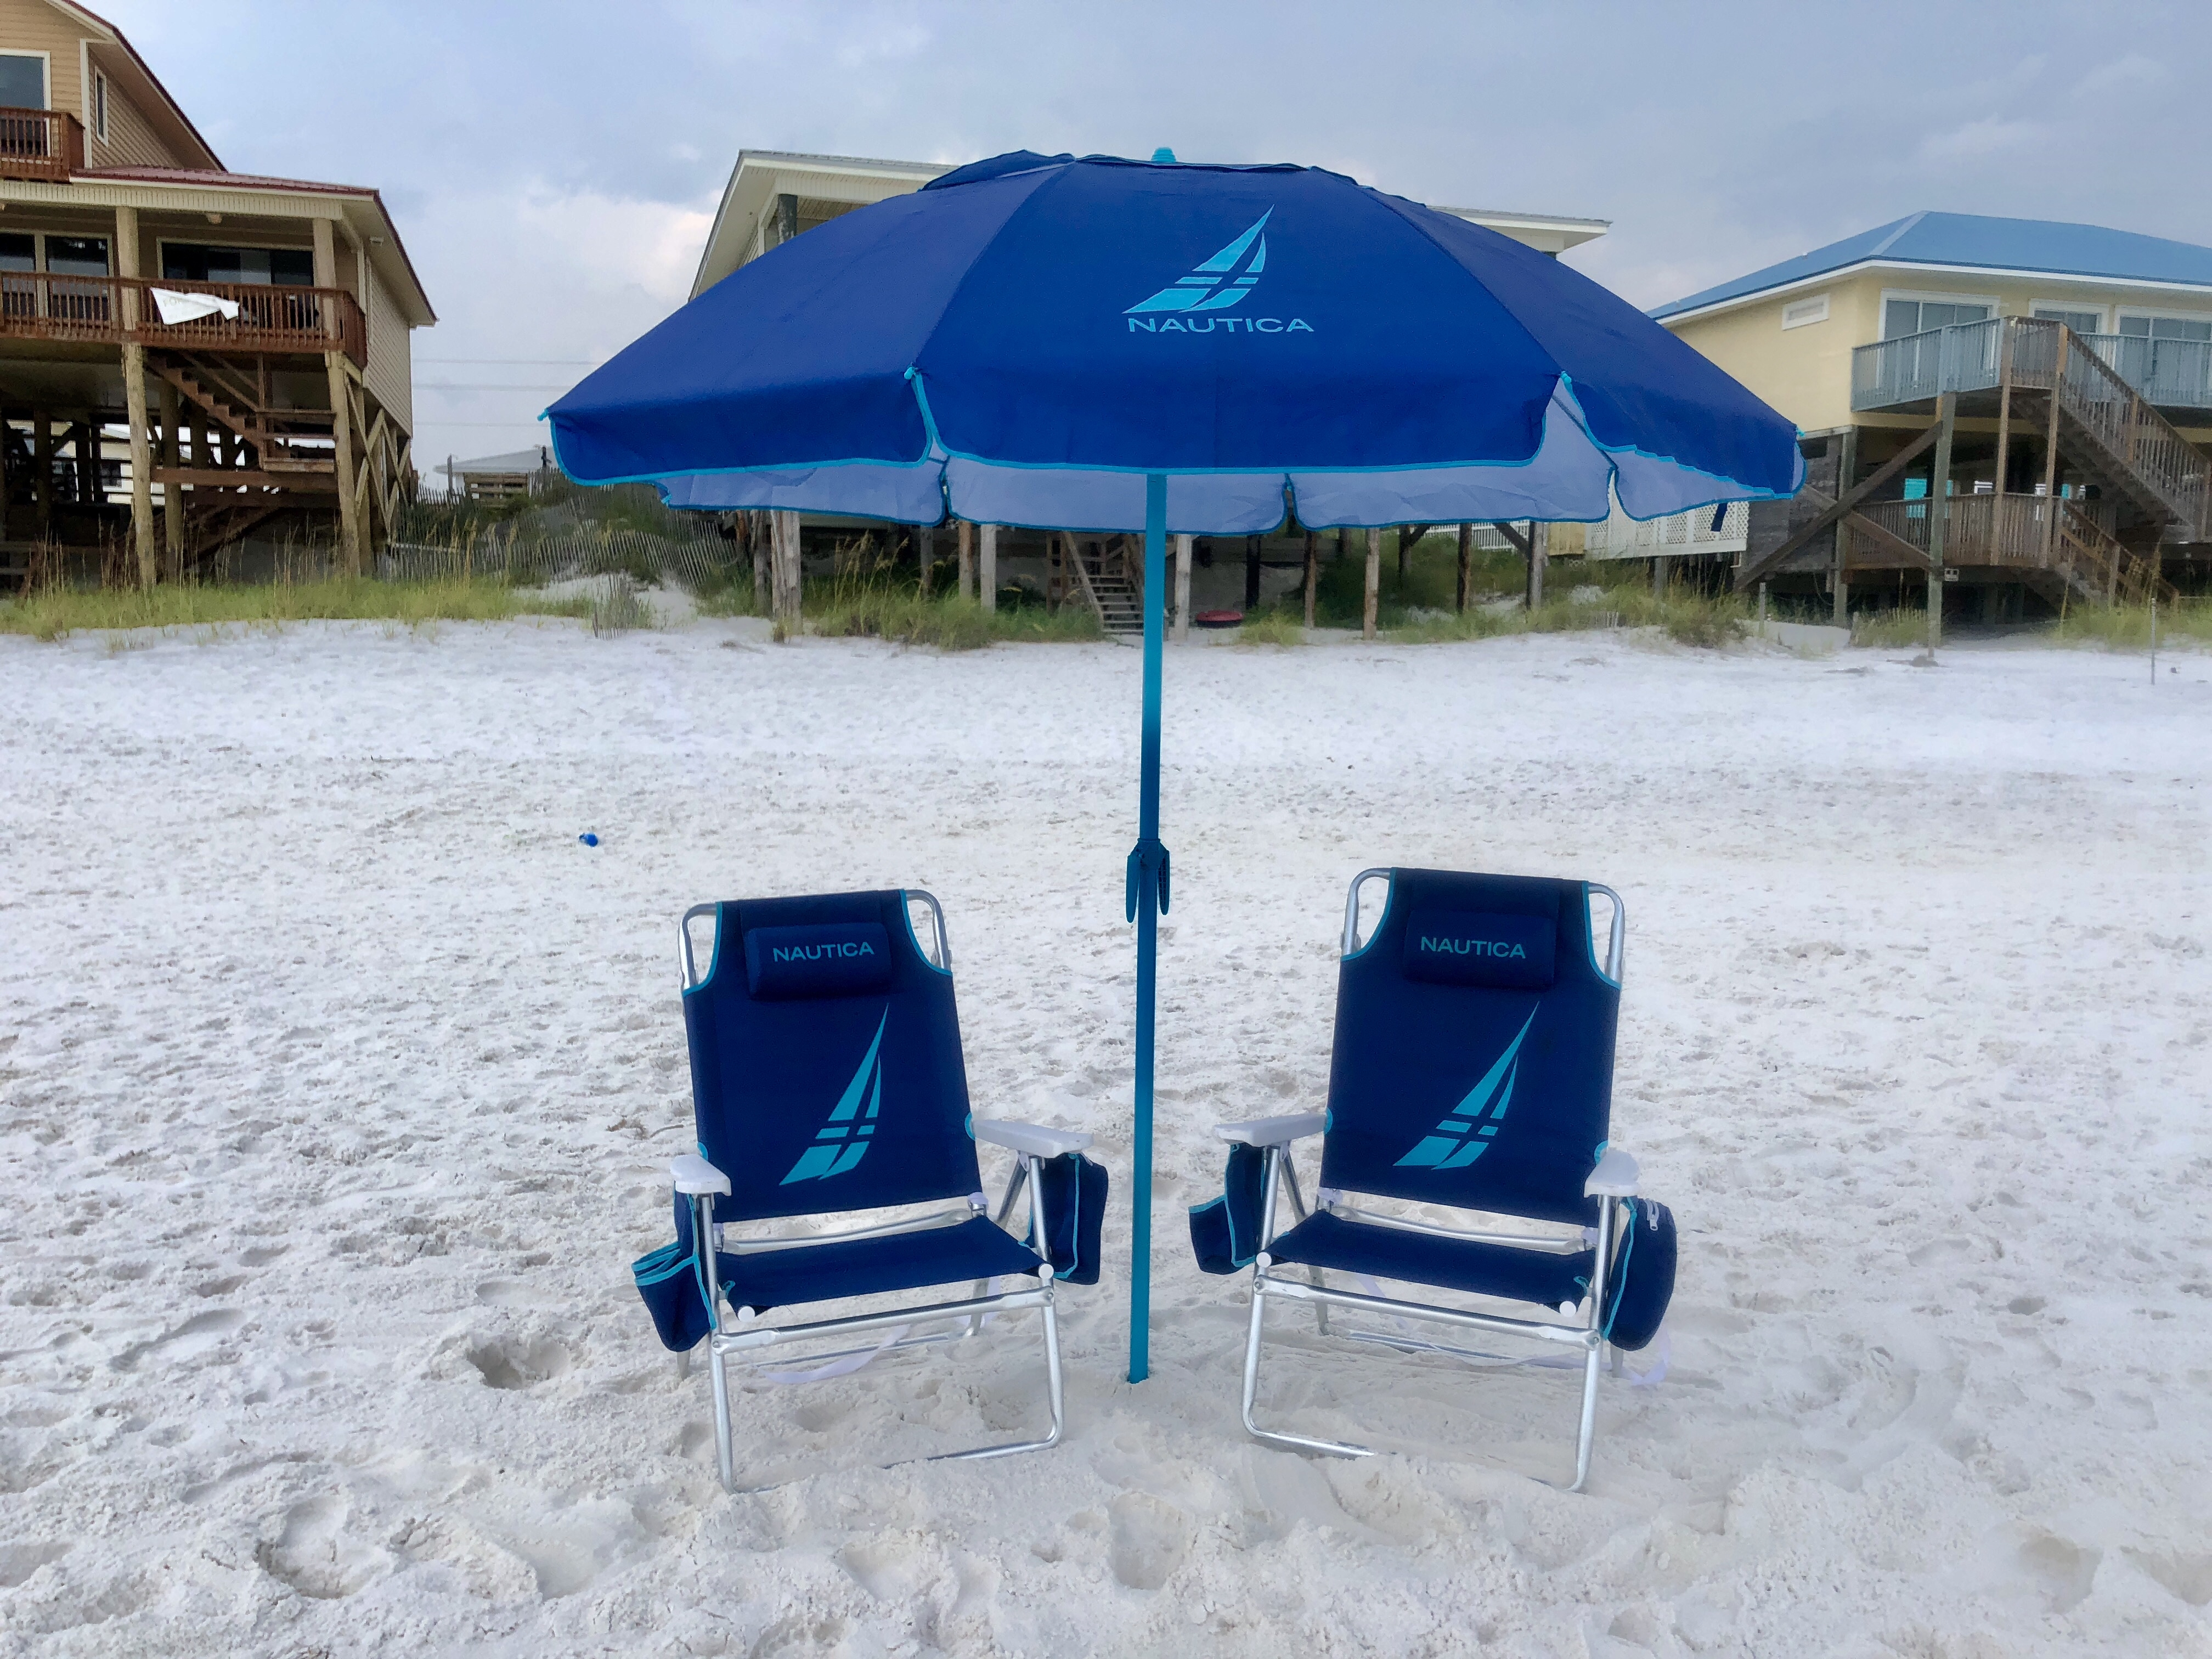 The Rental Shop 30A Beach Chair service rentals